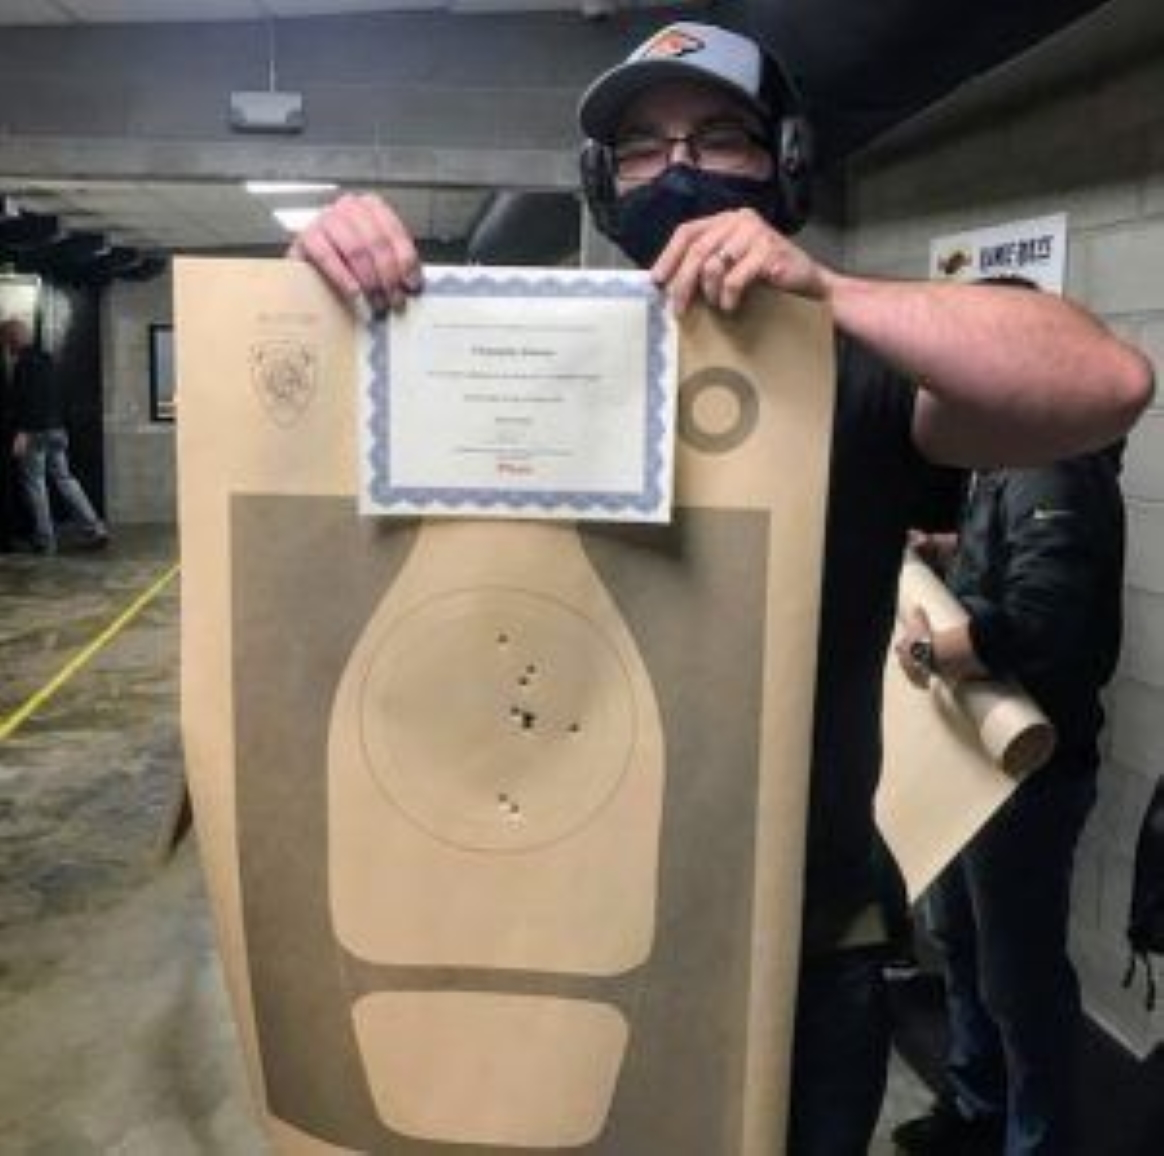 Firearms safety training pushed by Colorado Security Agency amid gun sales spike